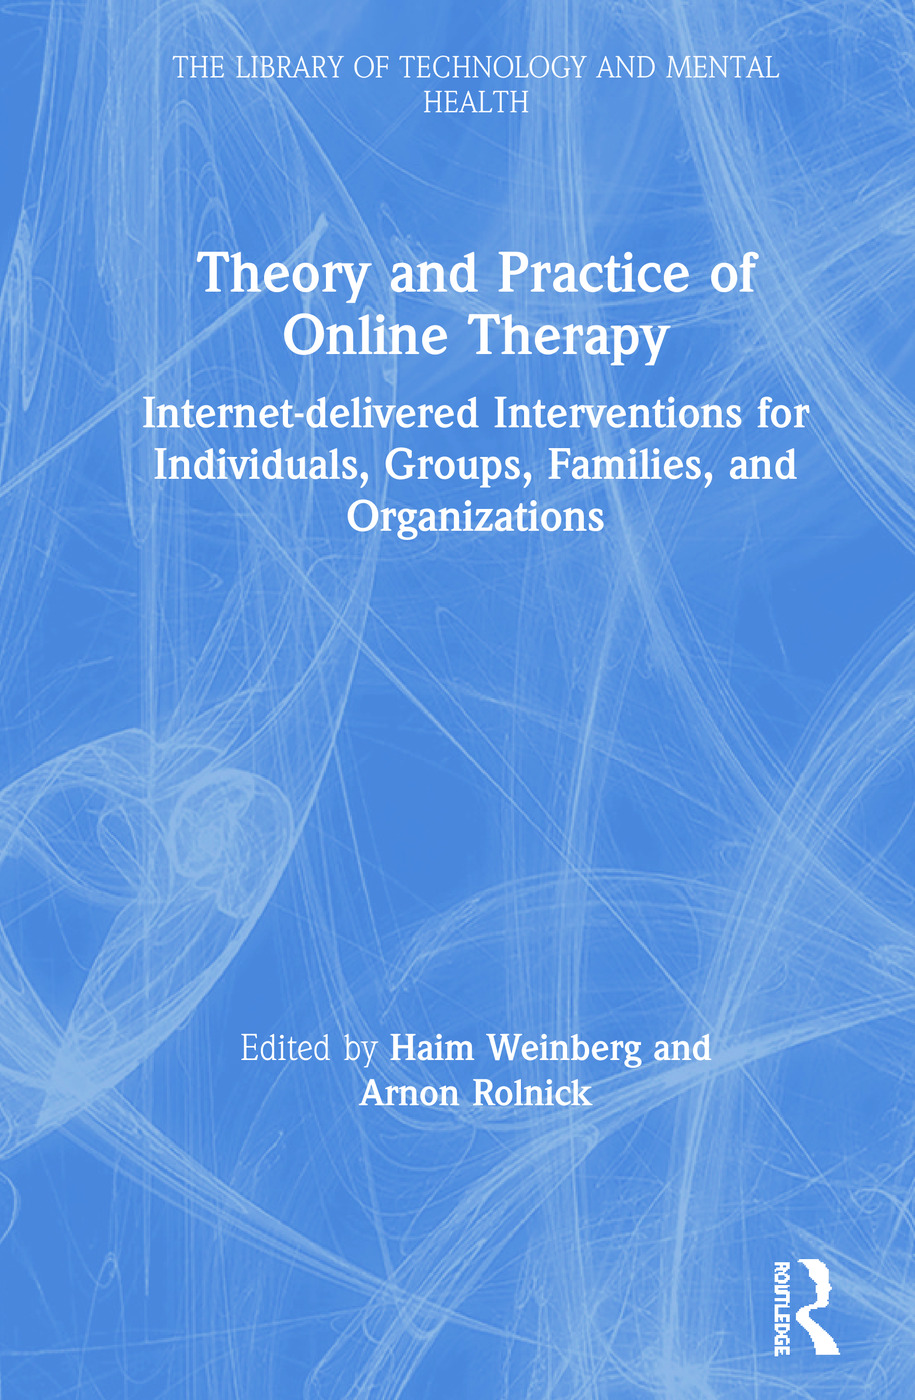 Theory and Practice of Online Therapy